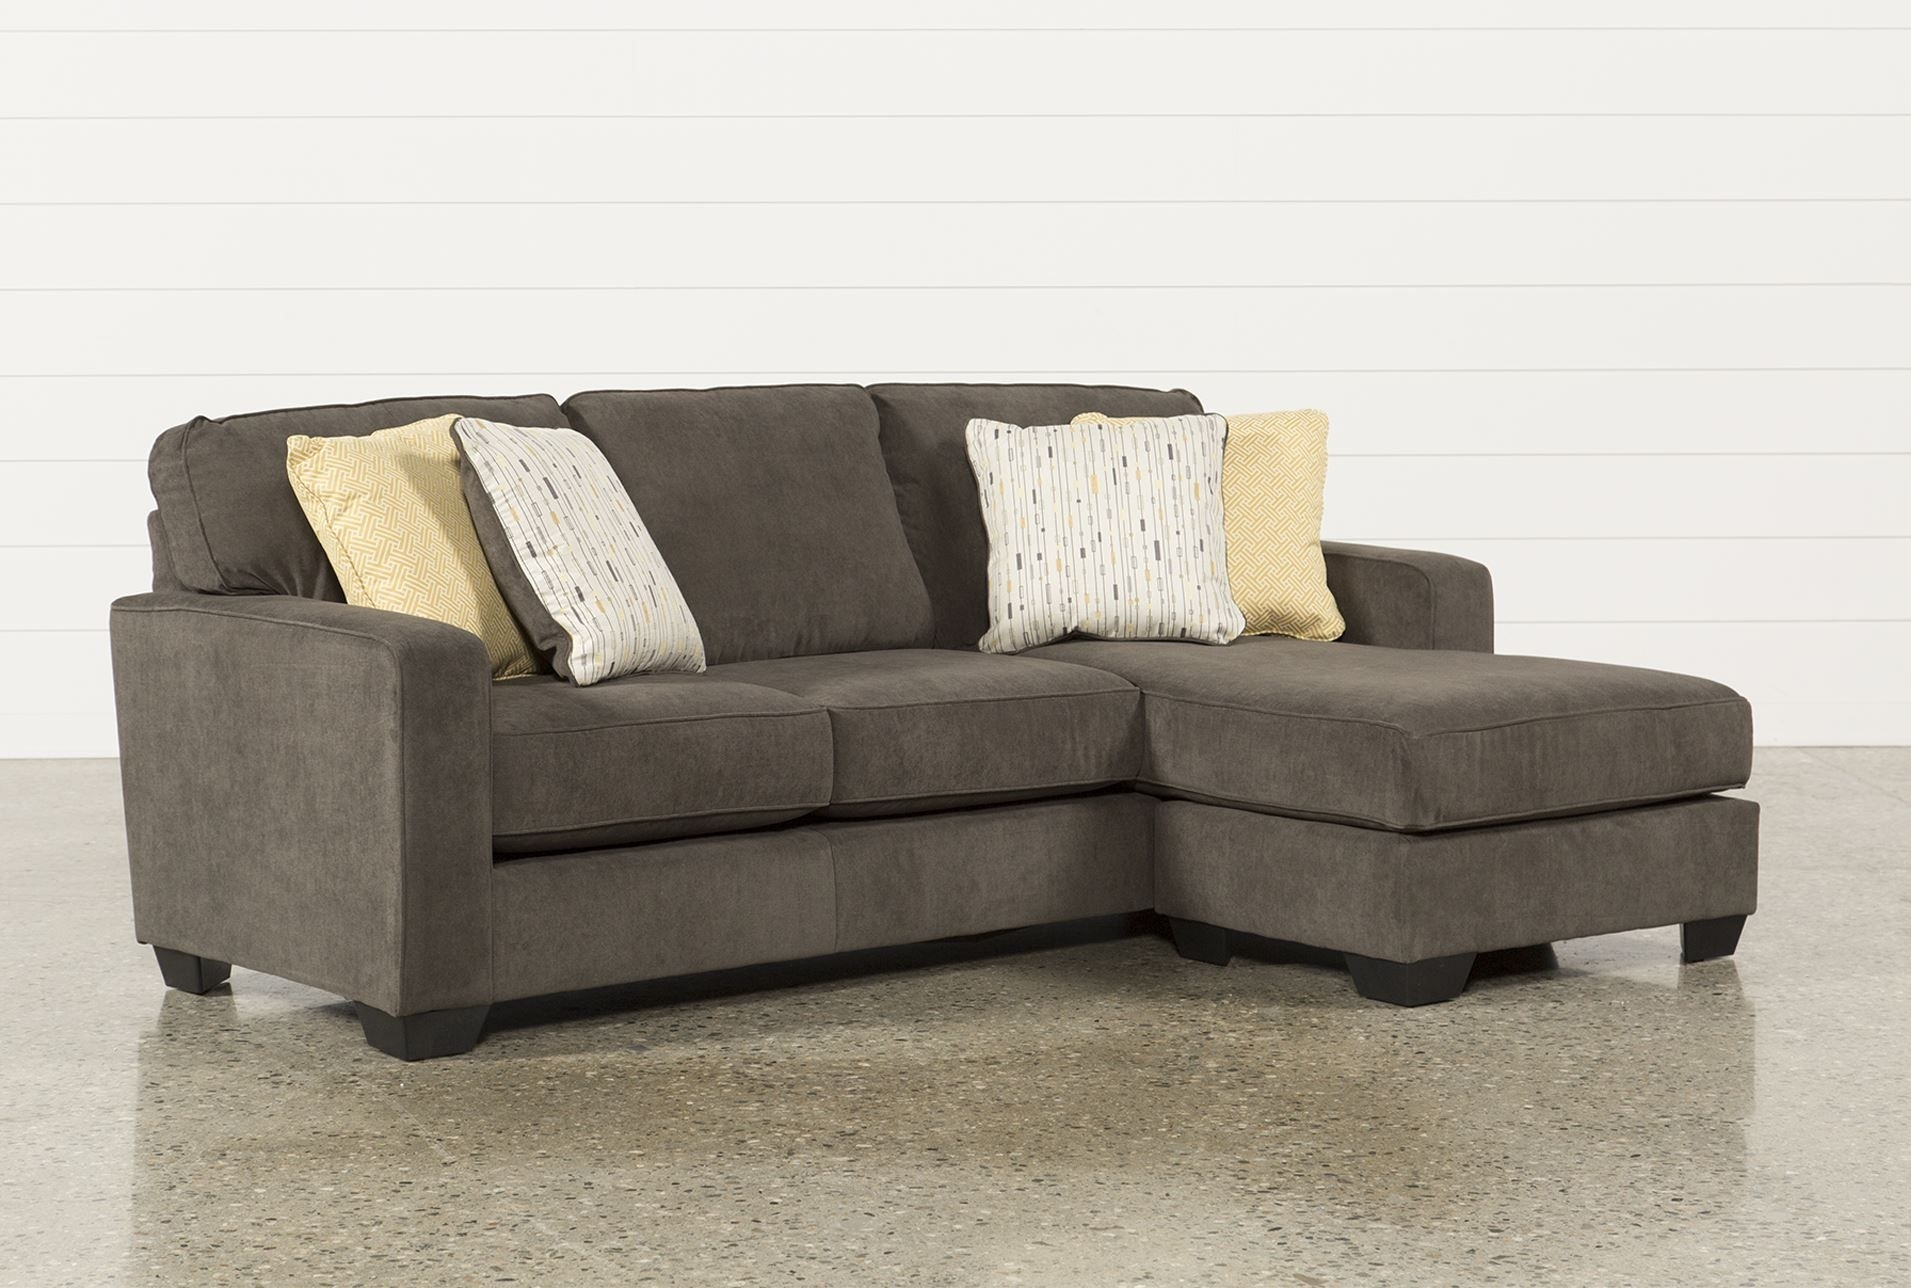 Hodan Sofa/chaise | Home – | Pinterest | Living Spaces, Spaces And Regarding Mcculla Sofa Sectionals With Reversible Chaise (Image 9 of 25)